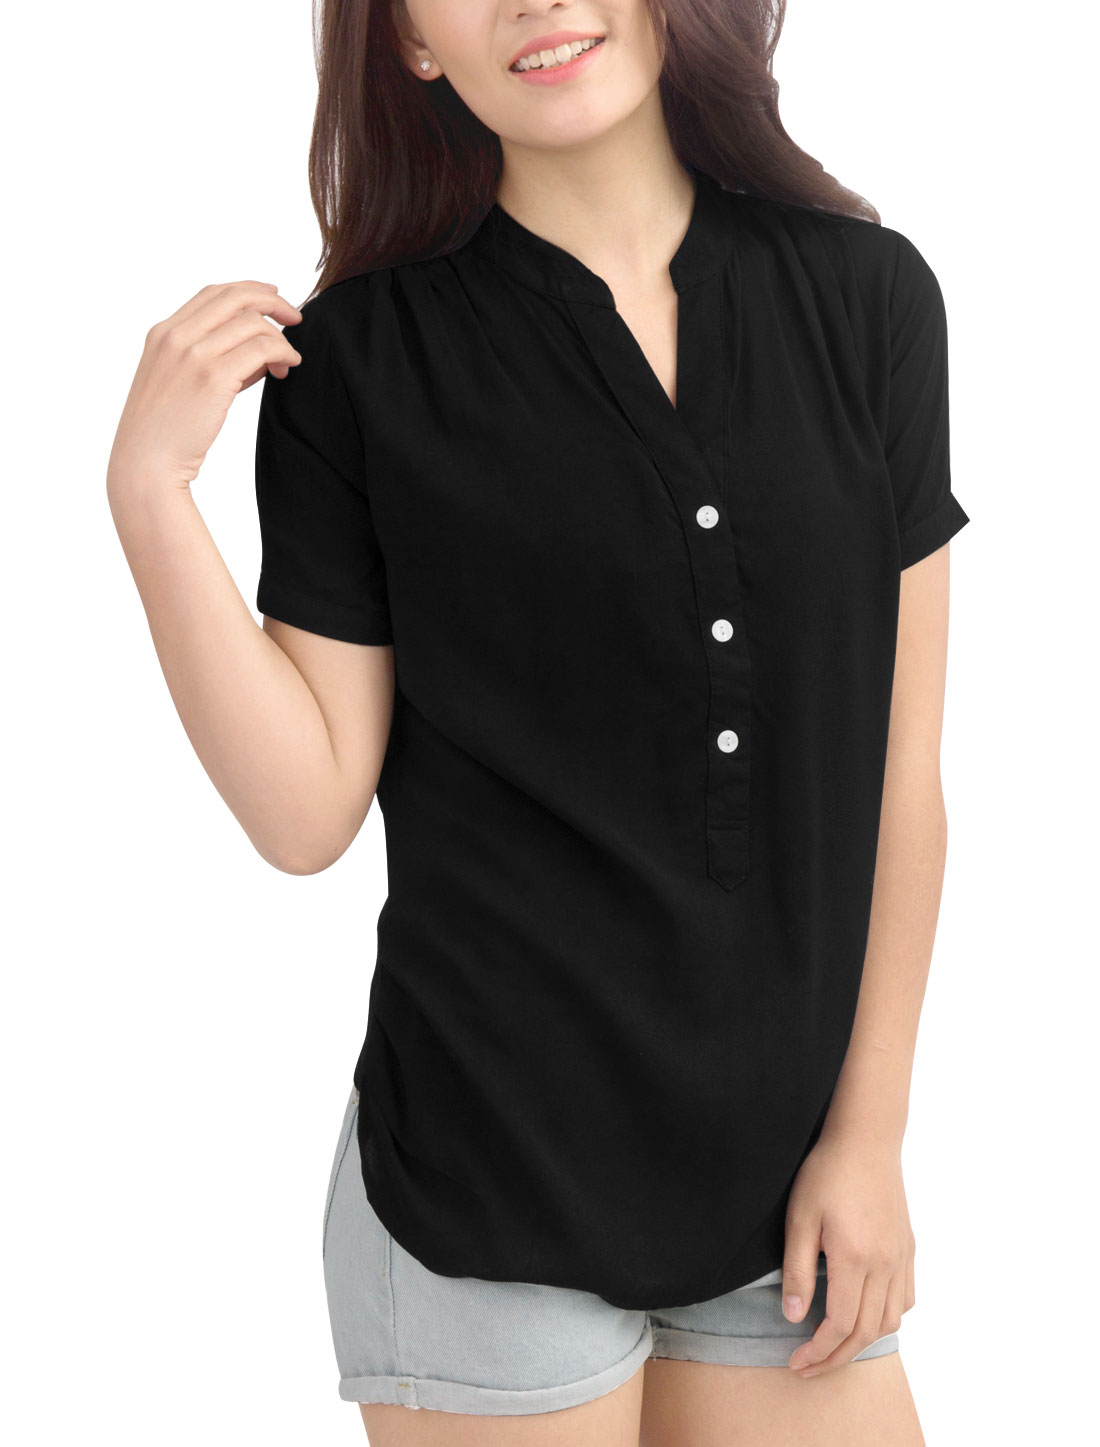 Women Ruched Side Buttons Closed Low High Hem Stylish Top Shirt Black S